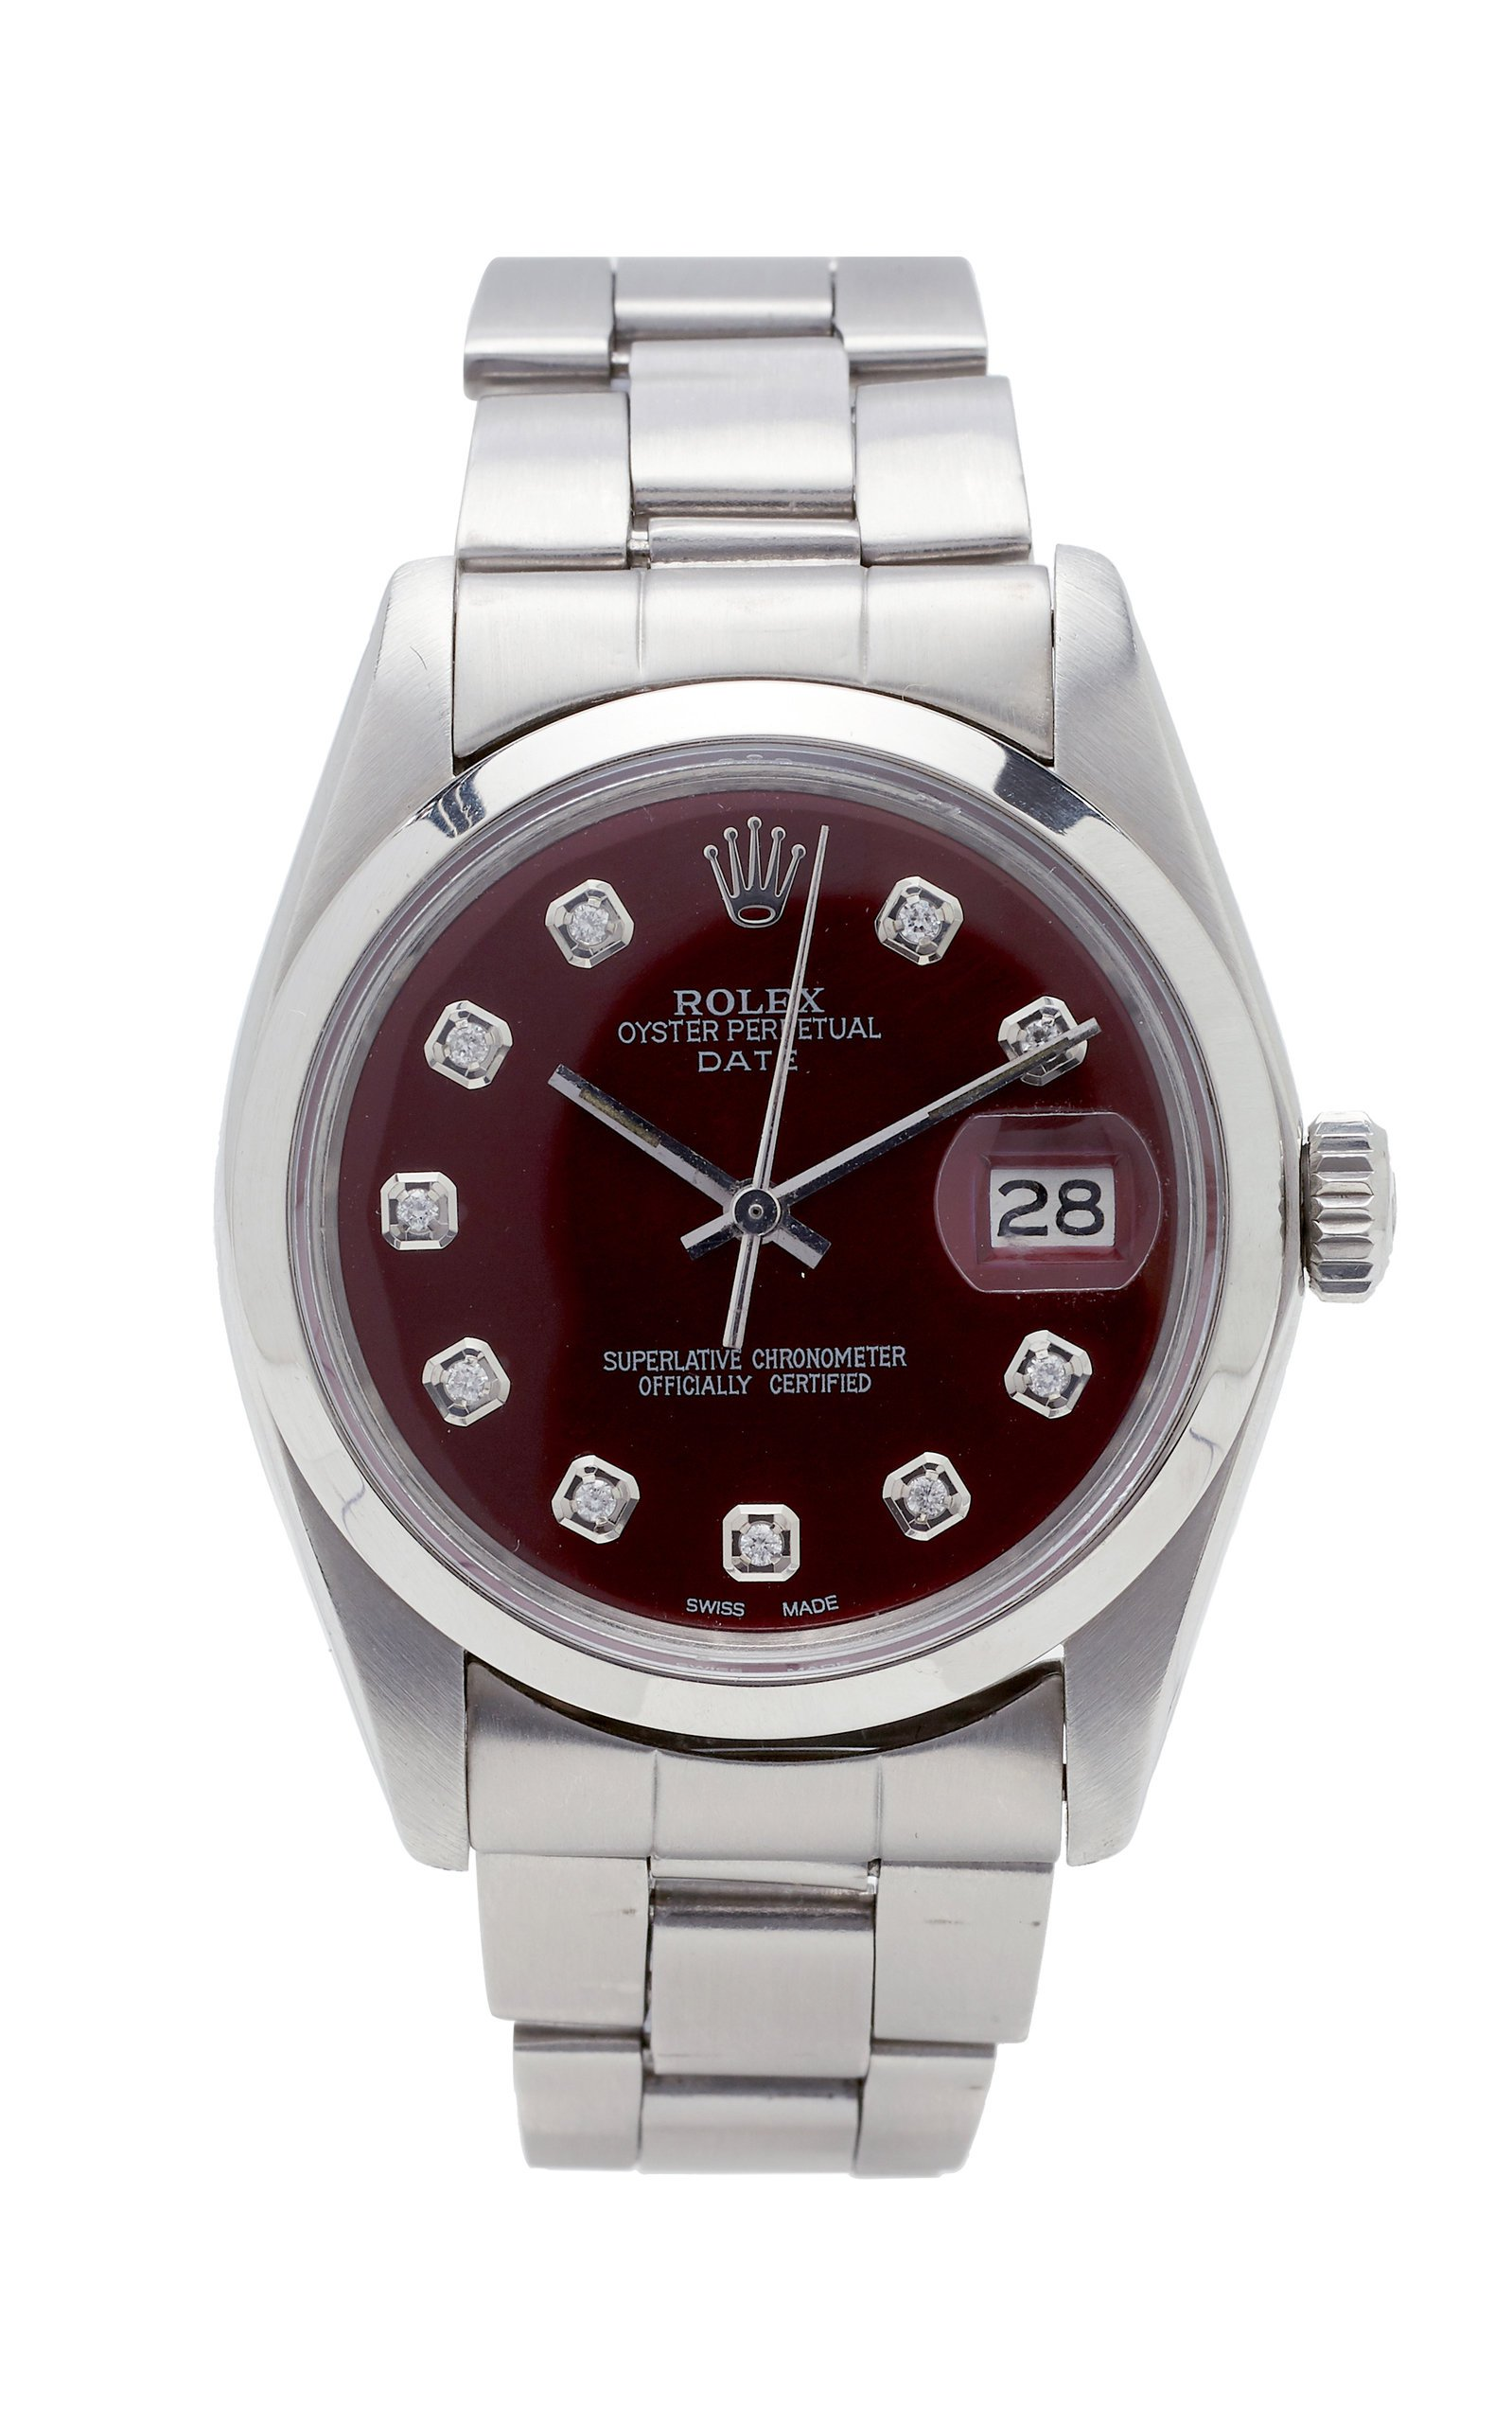 Vintage Watches Rolex Date 34mm Cherry Cola Pearlized Diamond Dial